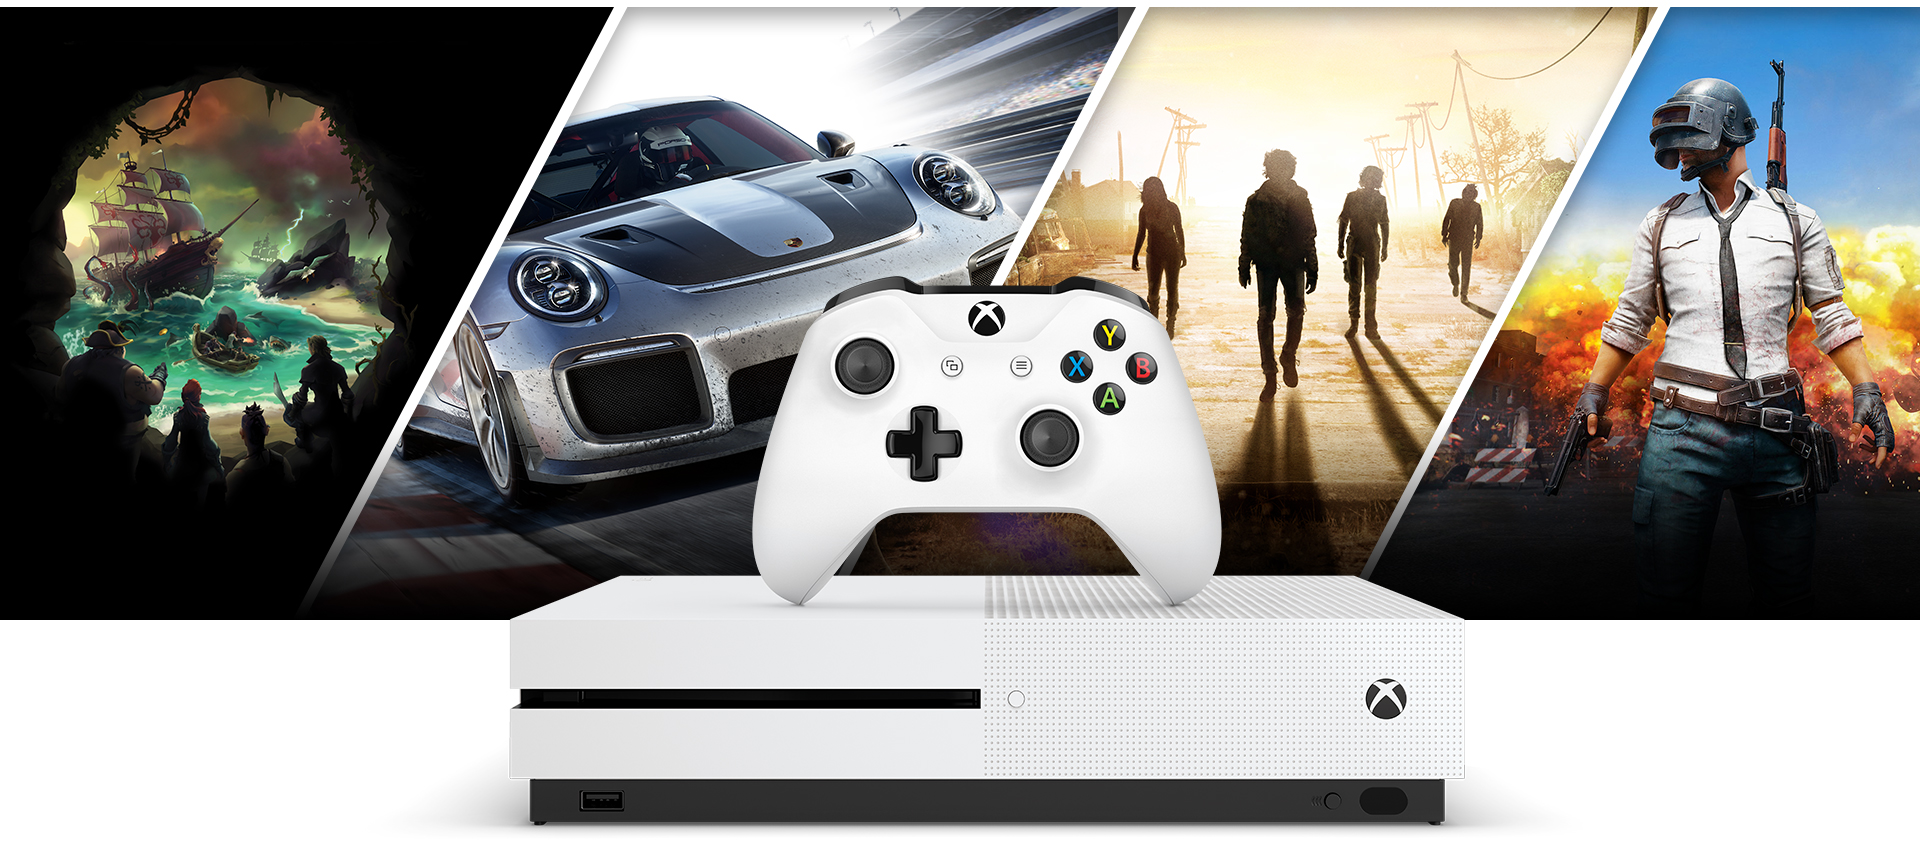 Afbeeldingen van Sea of ​​Thieves, Forza 7, State of Decay 3 en Player Unknown's Battlegrounds achter een Xbox One S en witte Xbox-controller